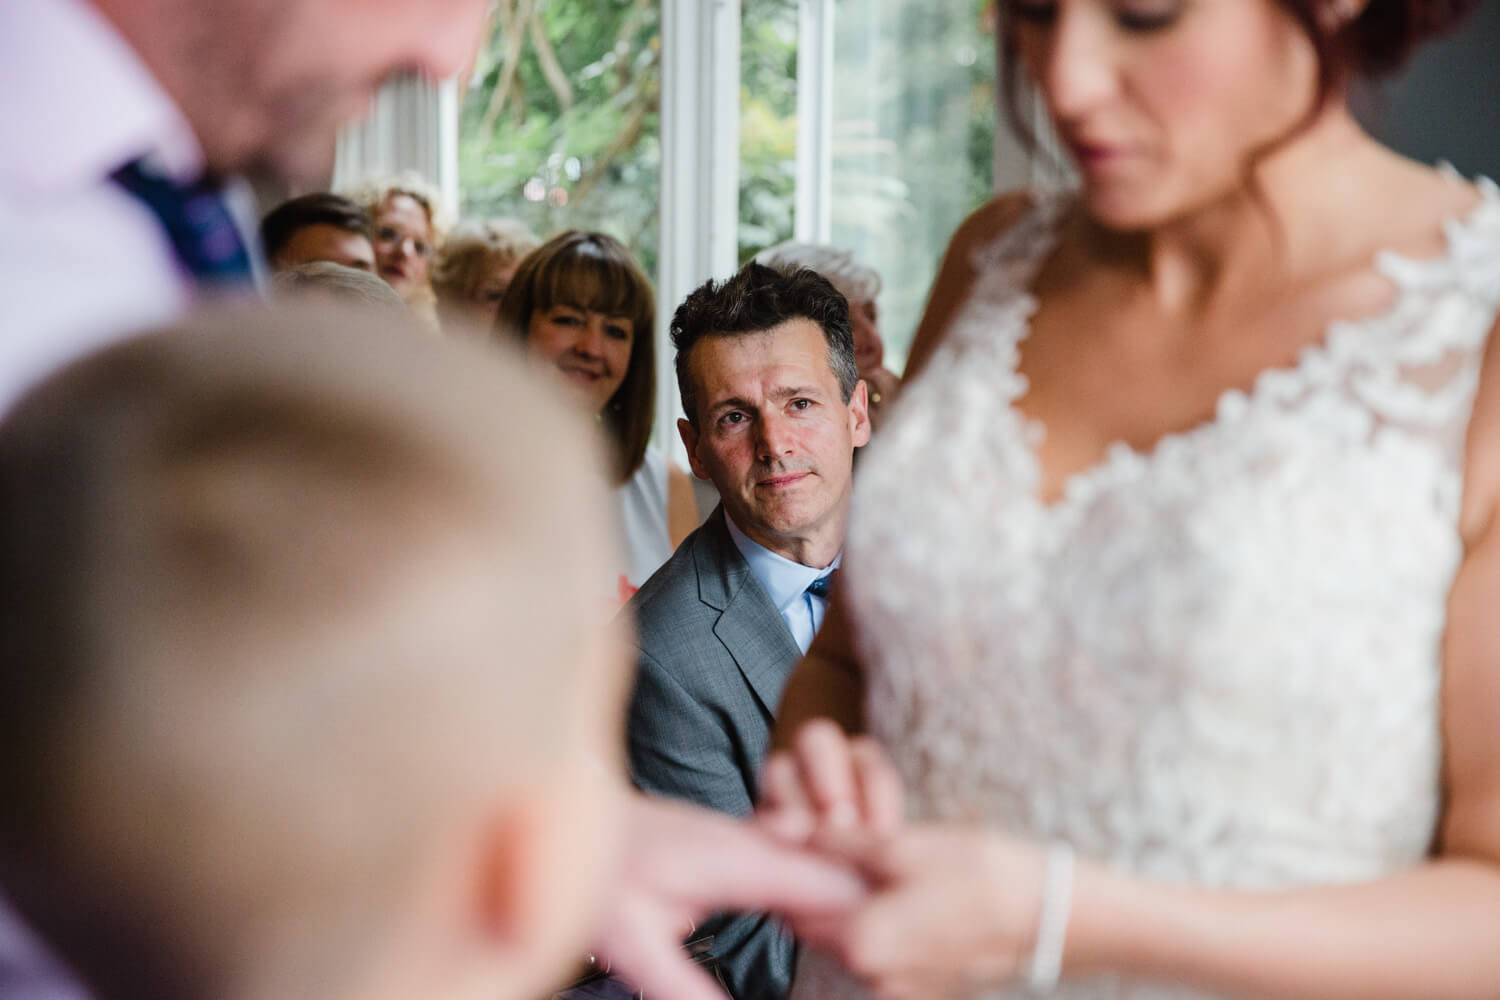 close up intimate photograph of father looking on while bride and groom exchange wedding rings